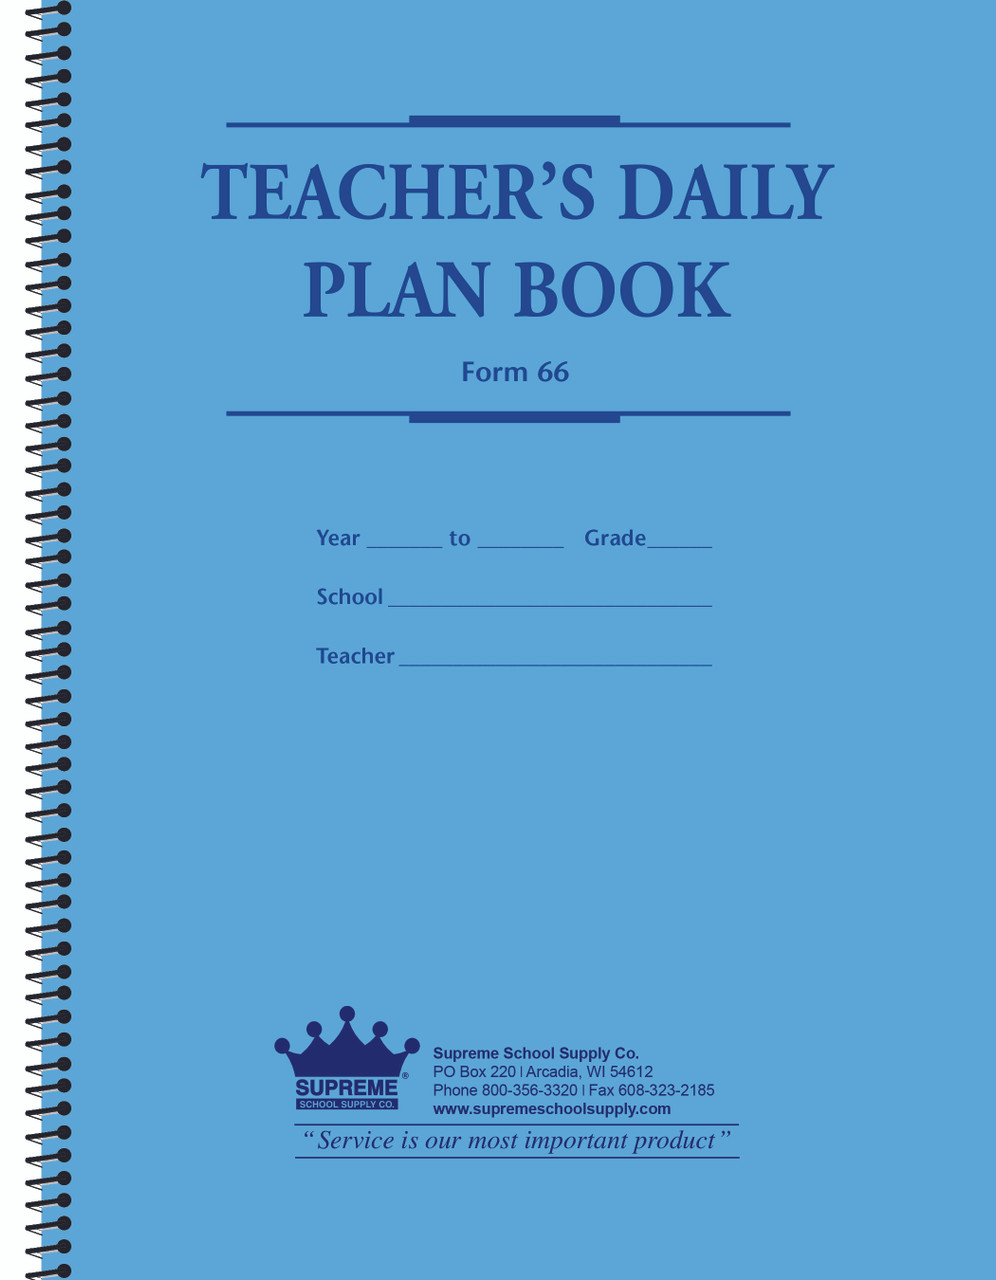 Lesson Plan Book, 6 Day Cycle (66)